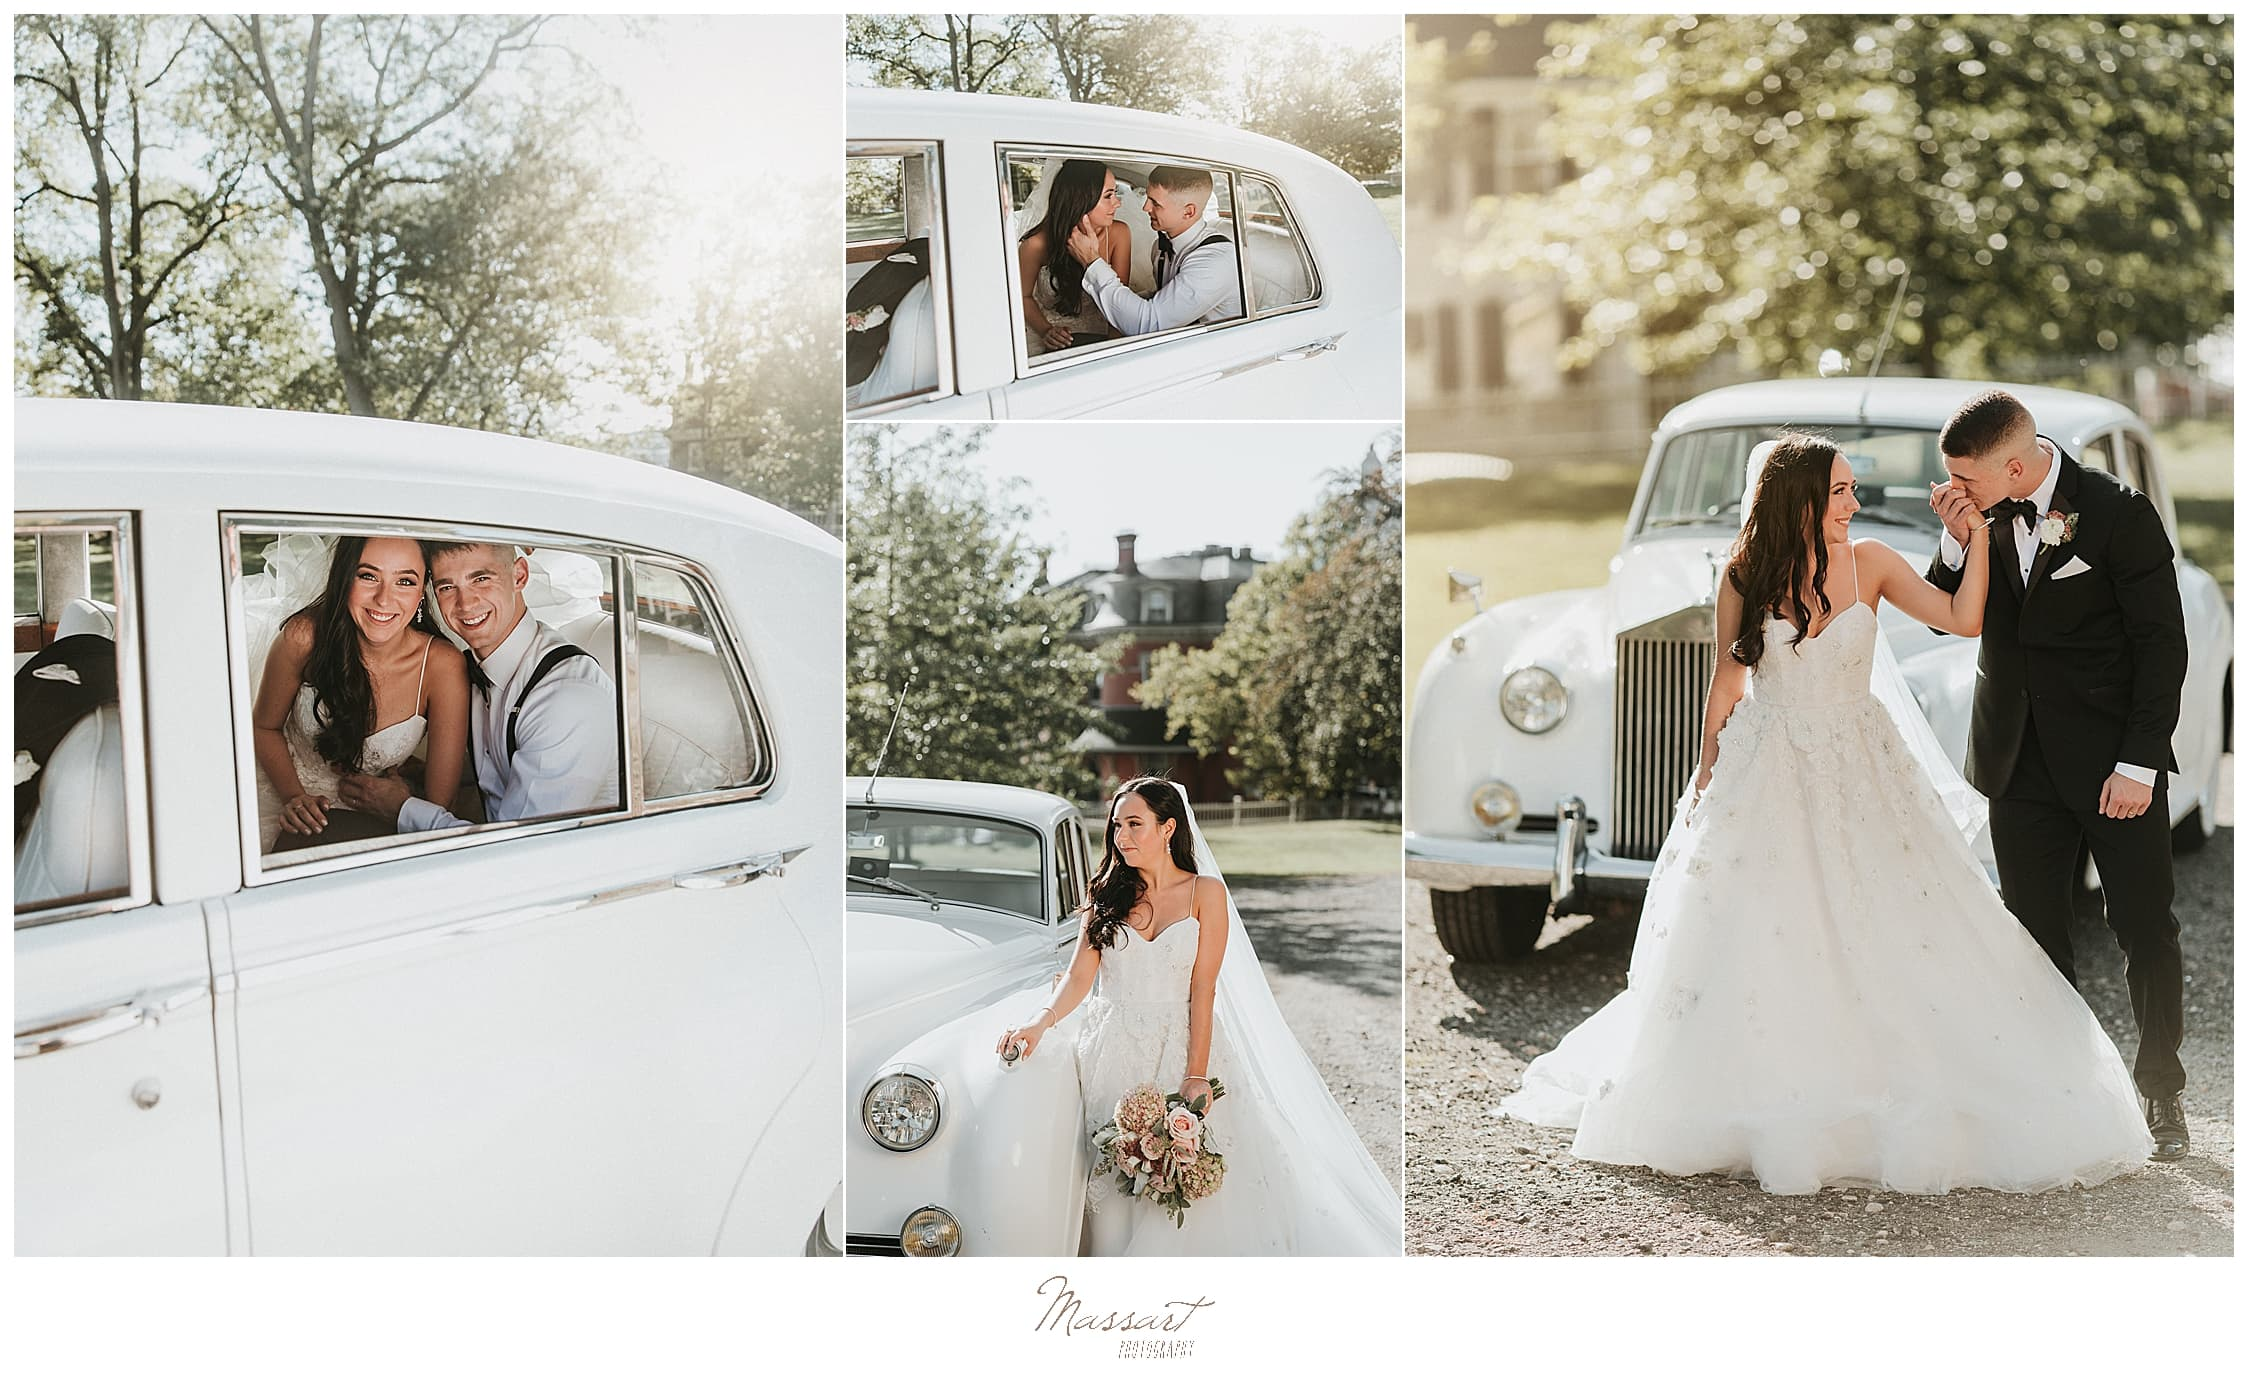 Rhode Island wedding photos with vintage car at Graduate Providence by Massart Photography